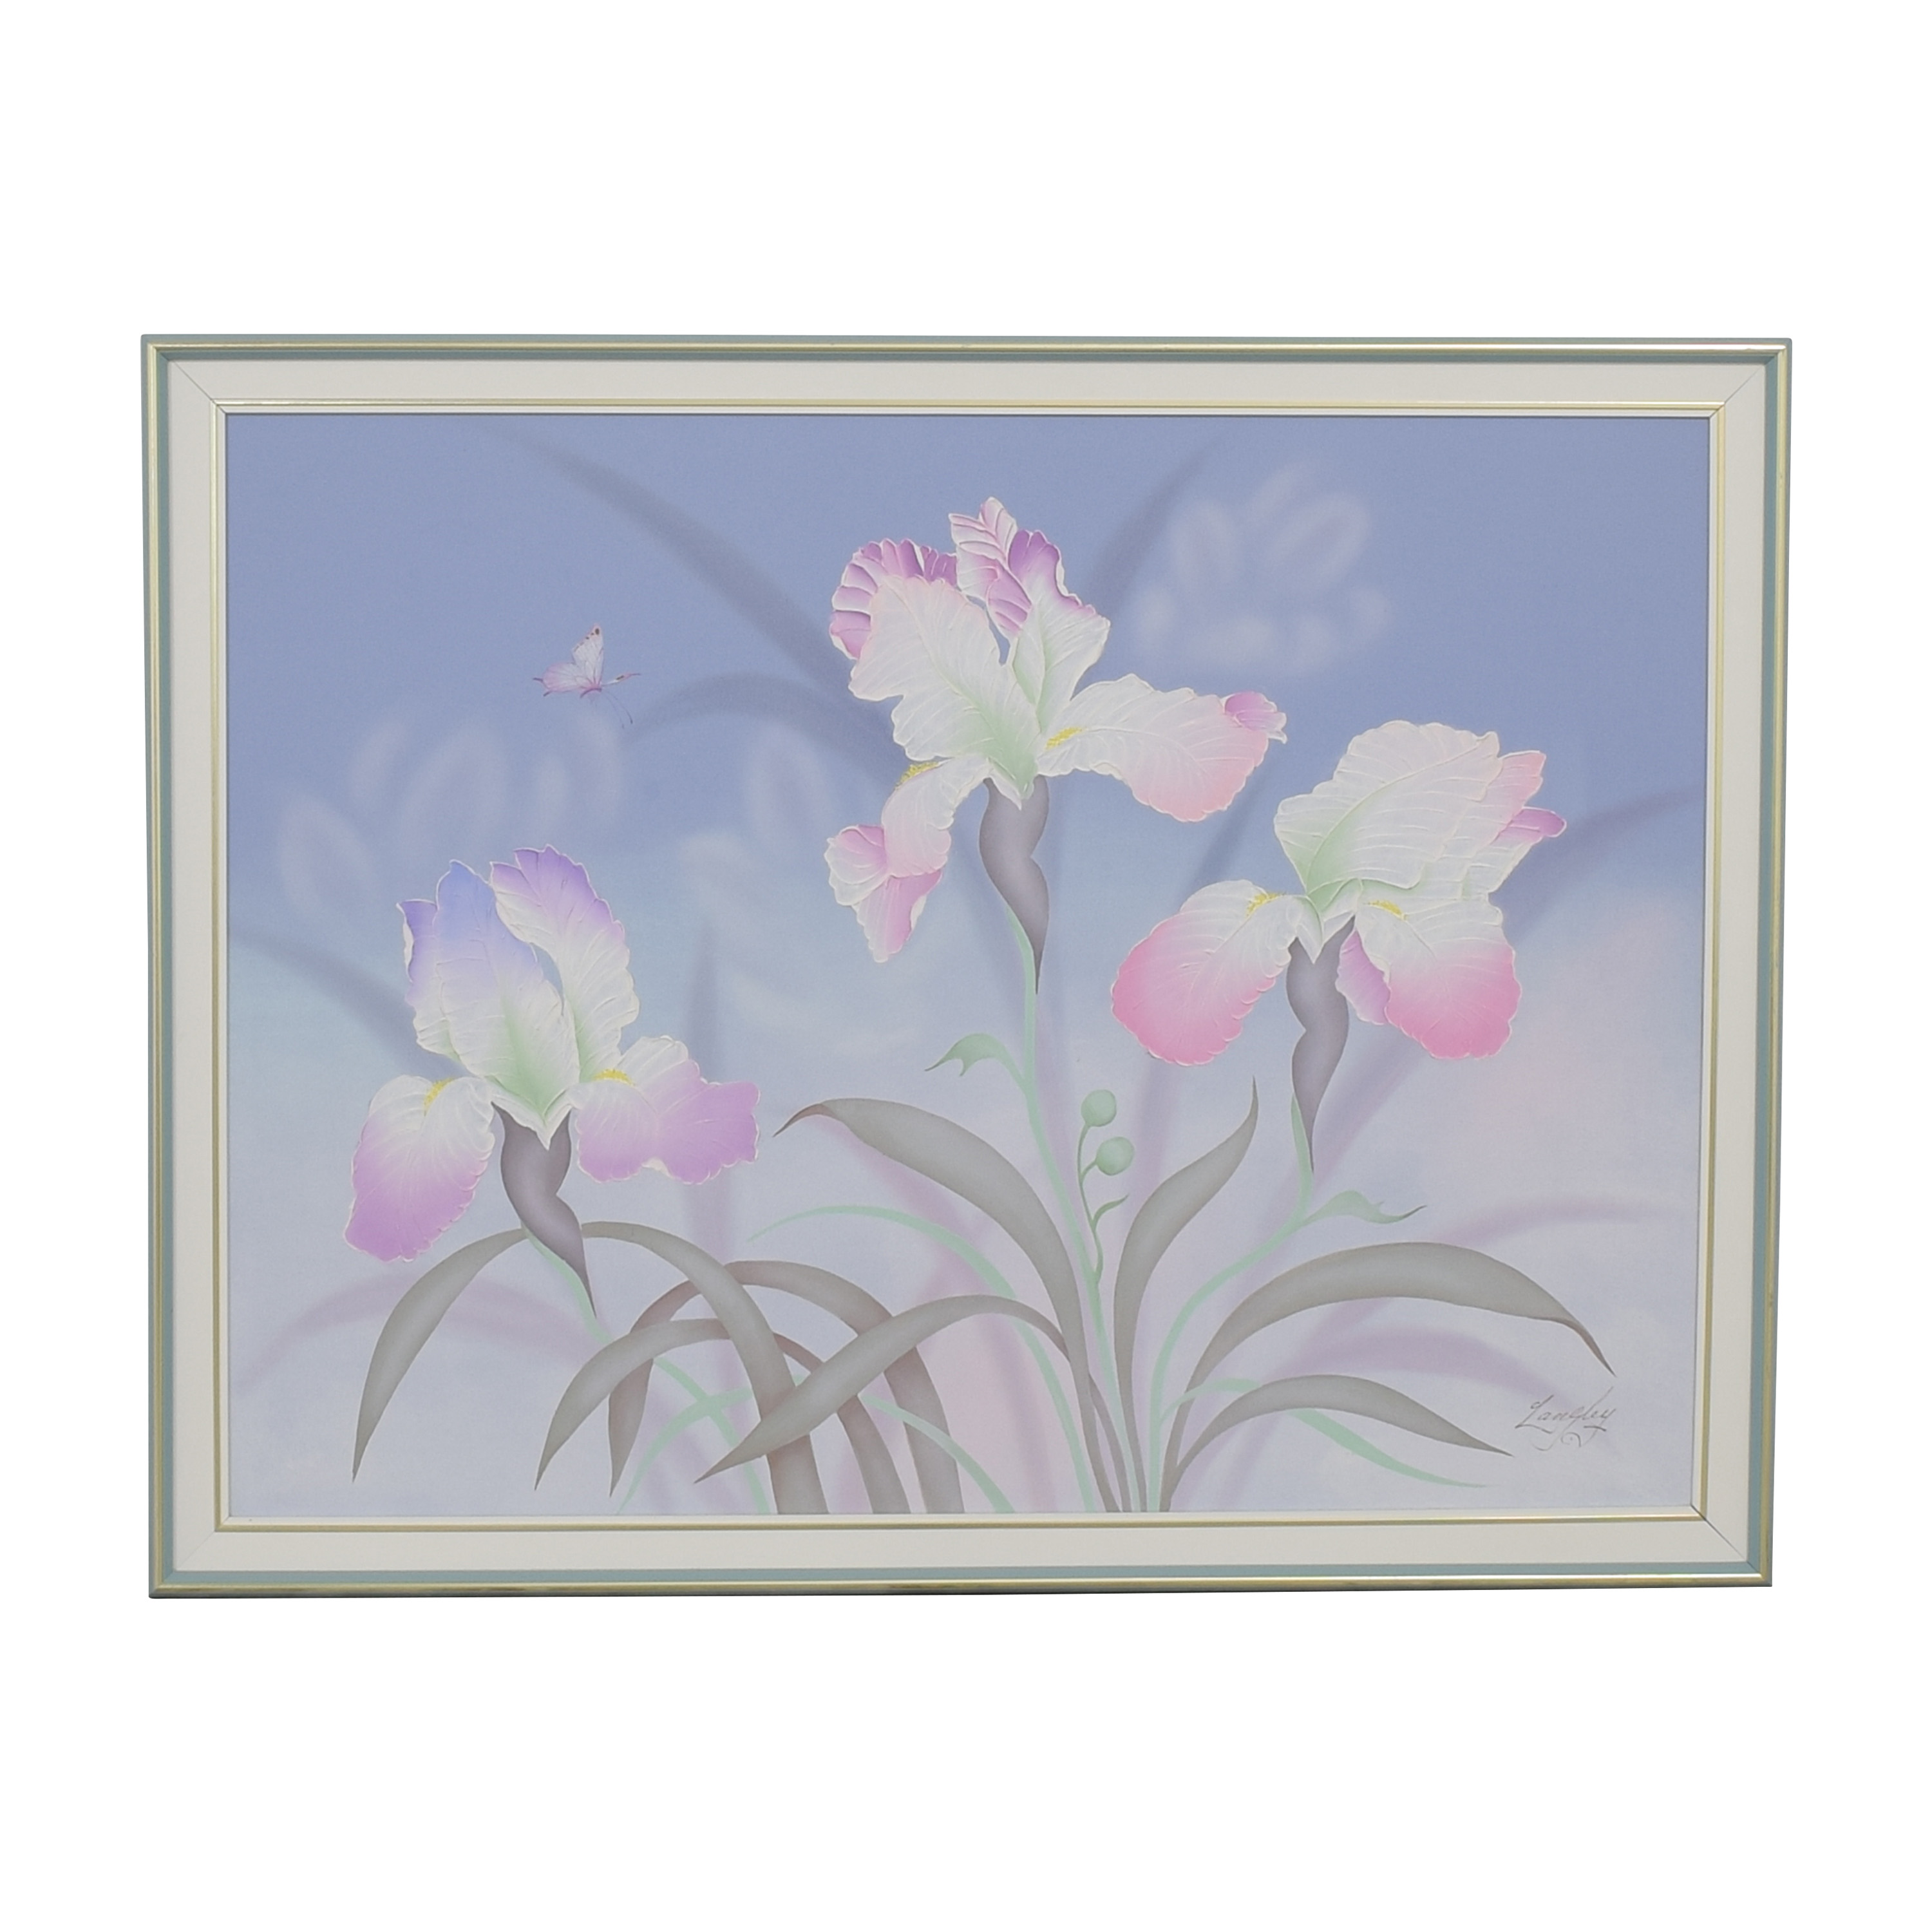 buy Seamans Framed Floral Wall Art Seamans